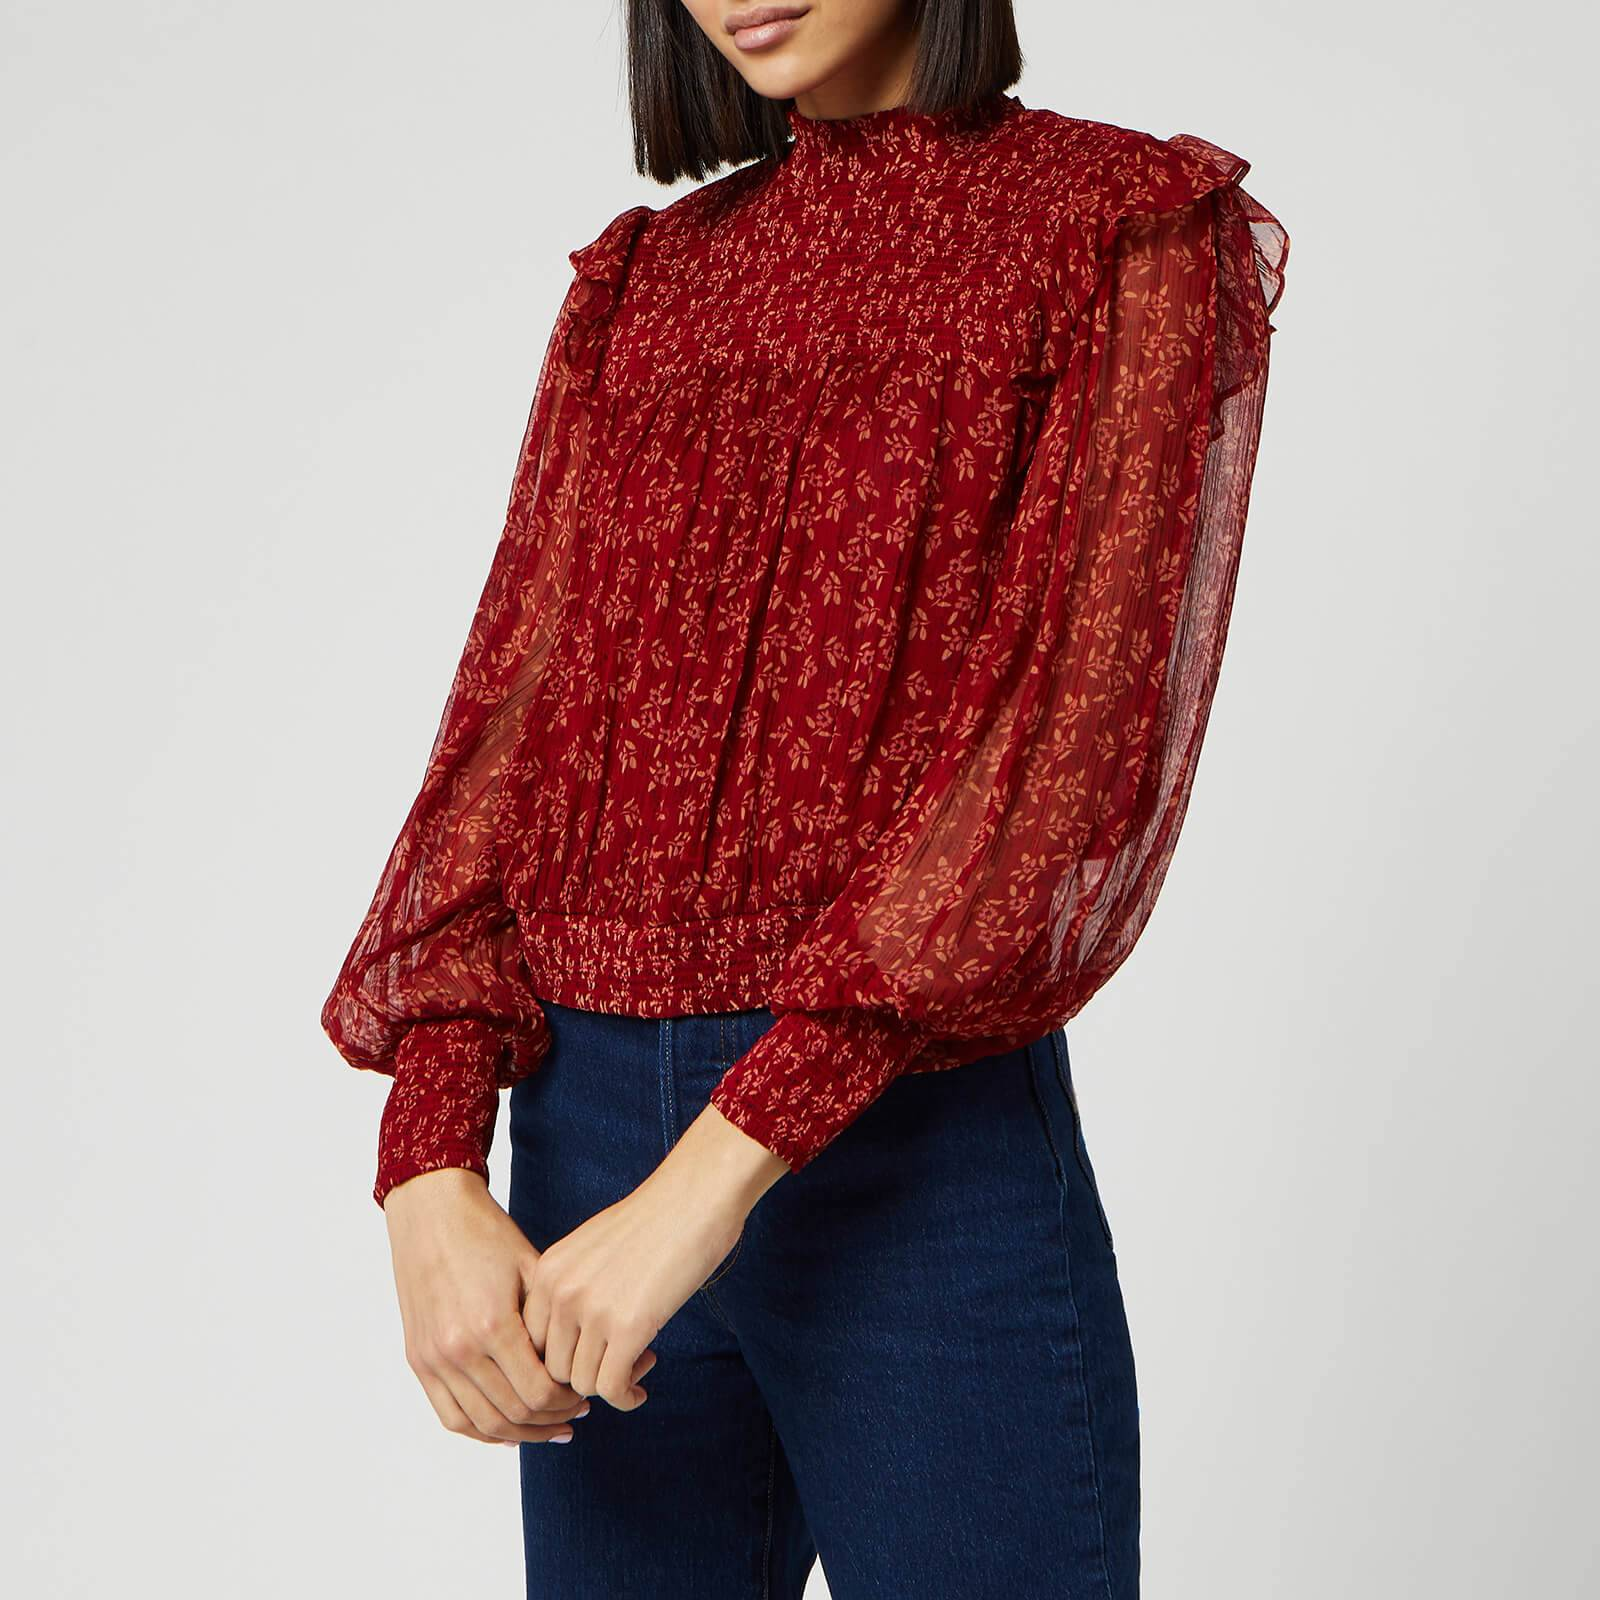 Free People Women's Roma Blouse - Red - S